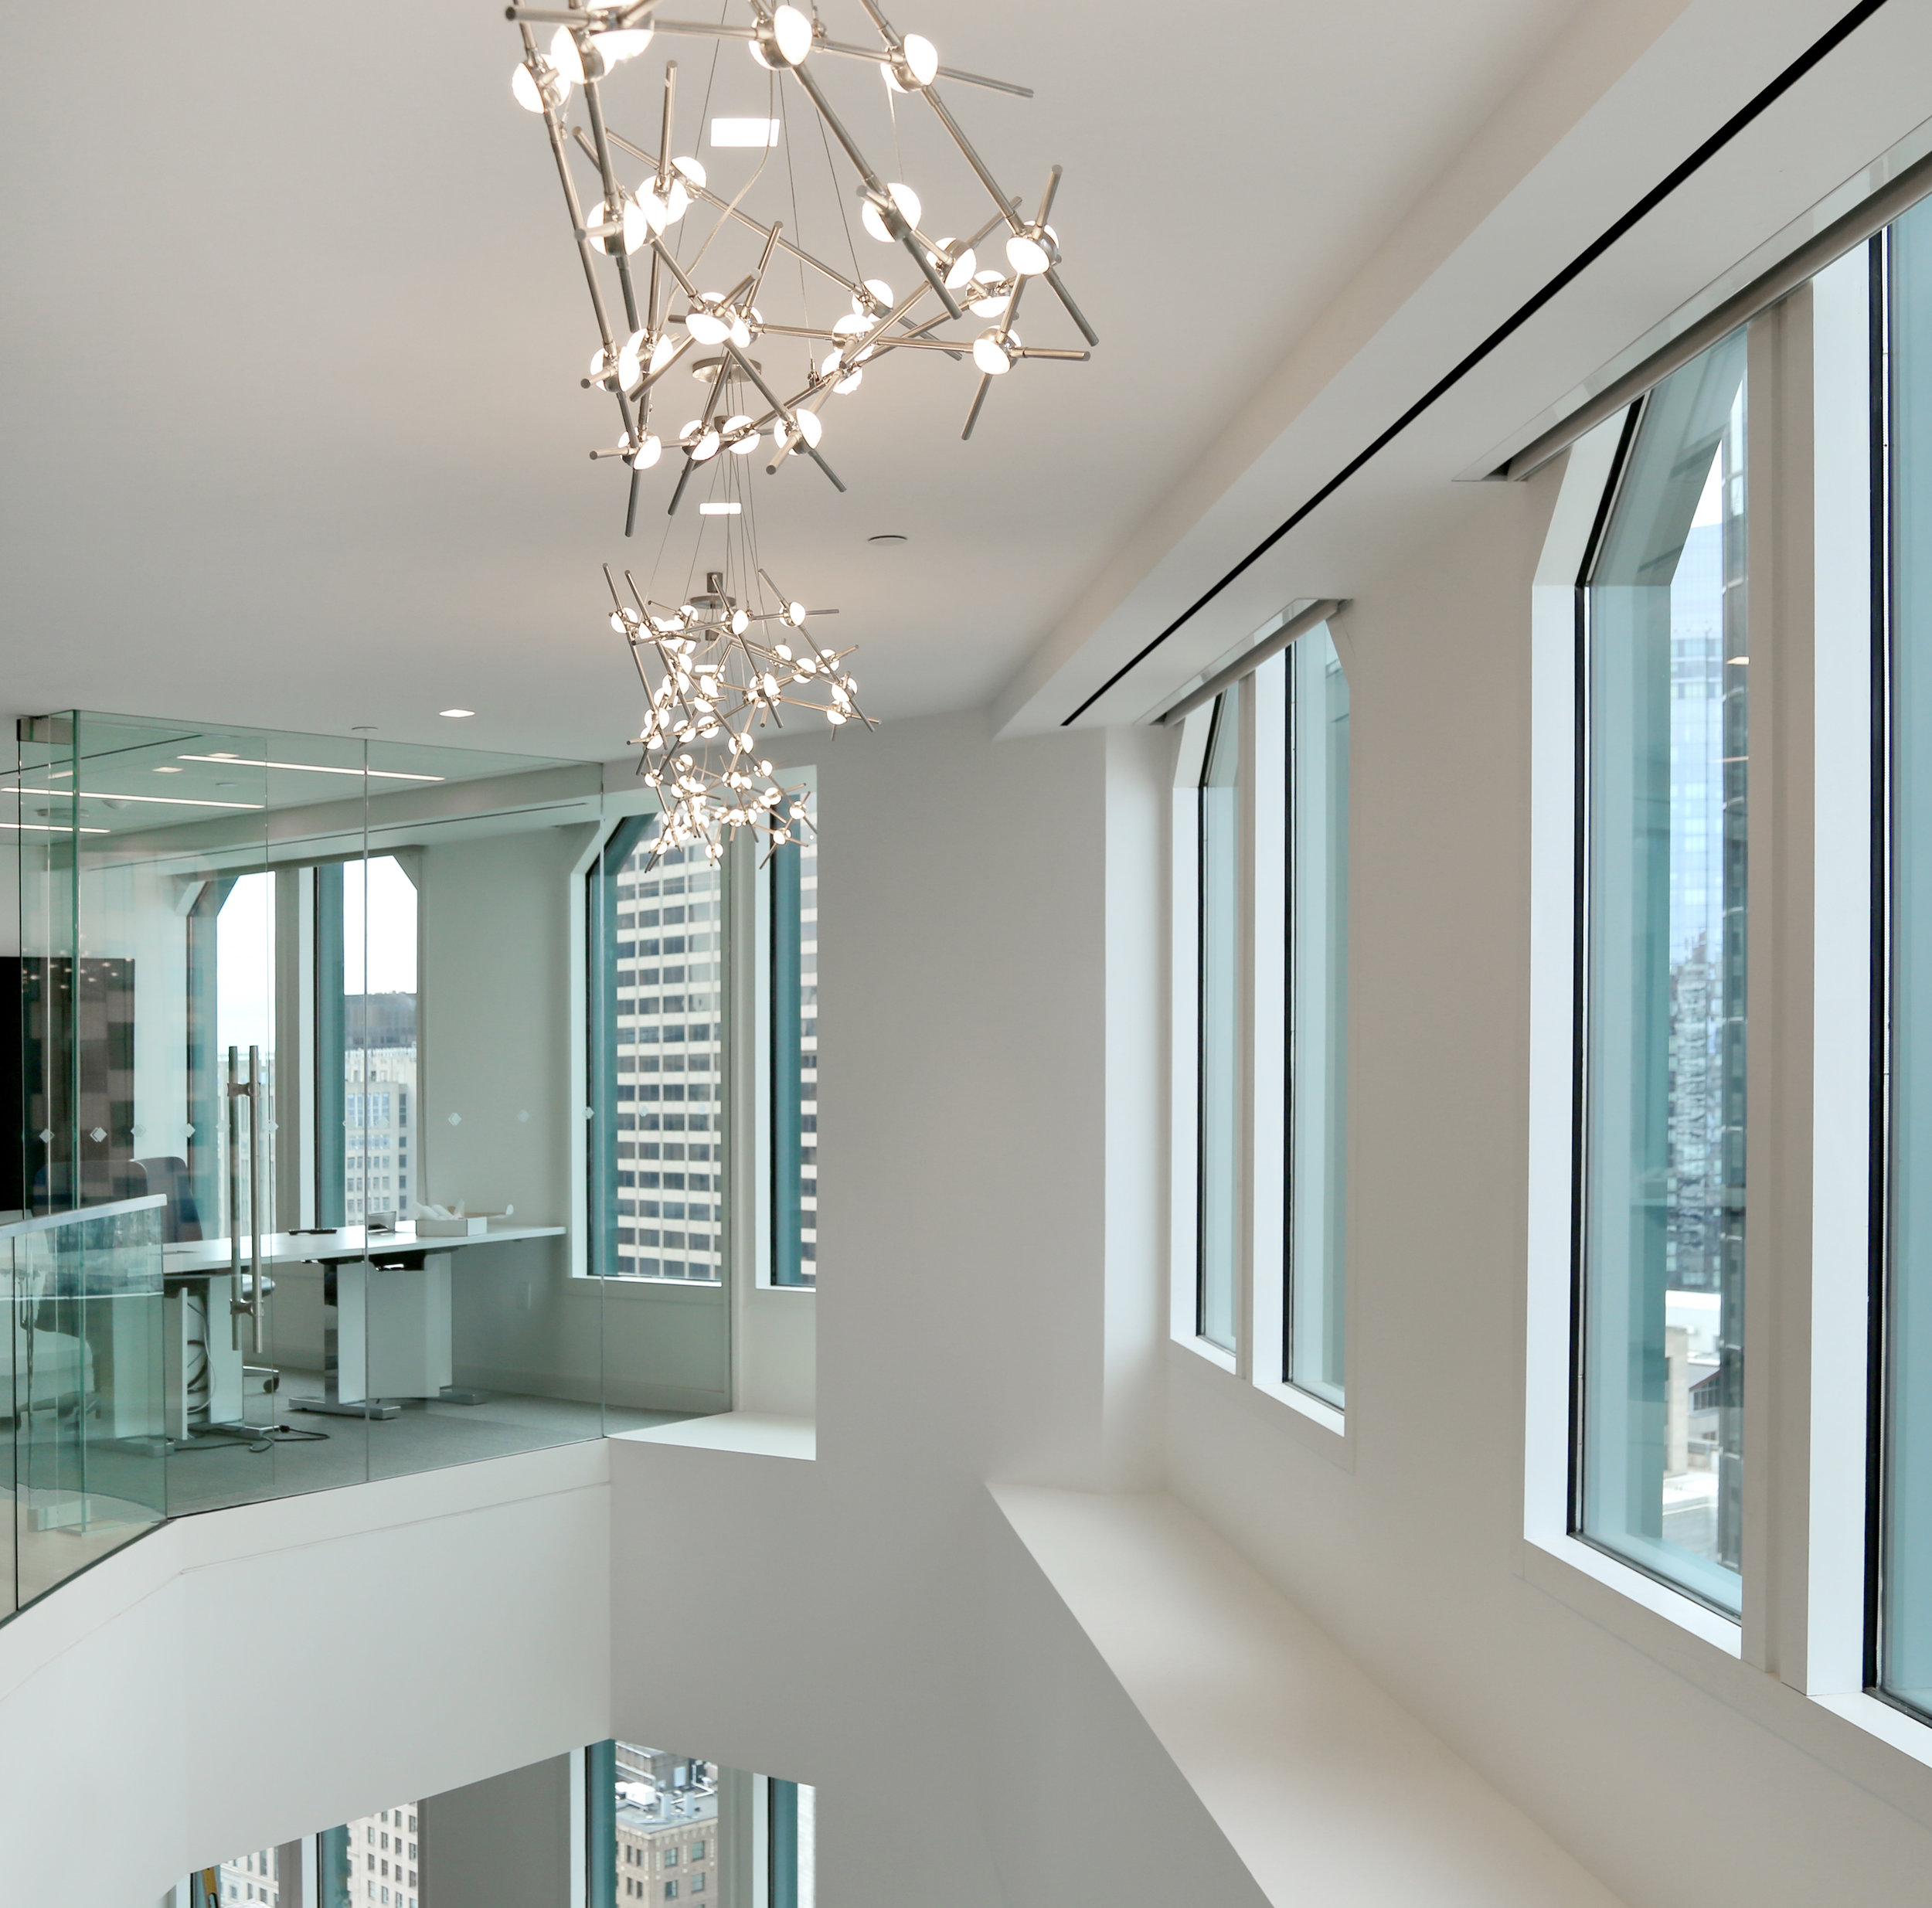 Illume Frameless Glass Wall System Floating Conference Room - Spaceworks AI.jpg